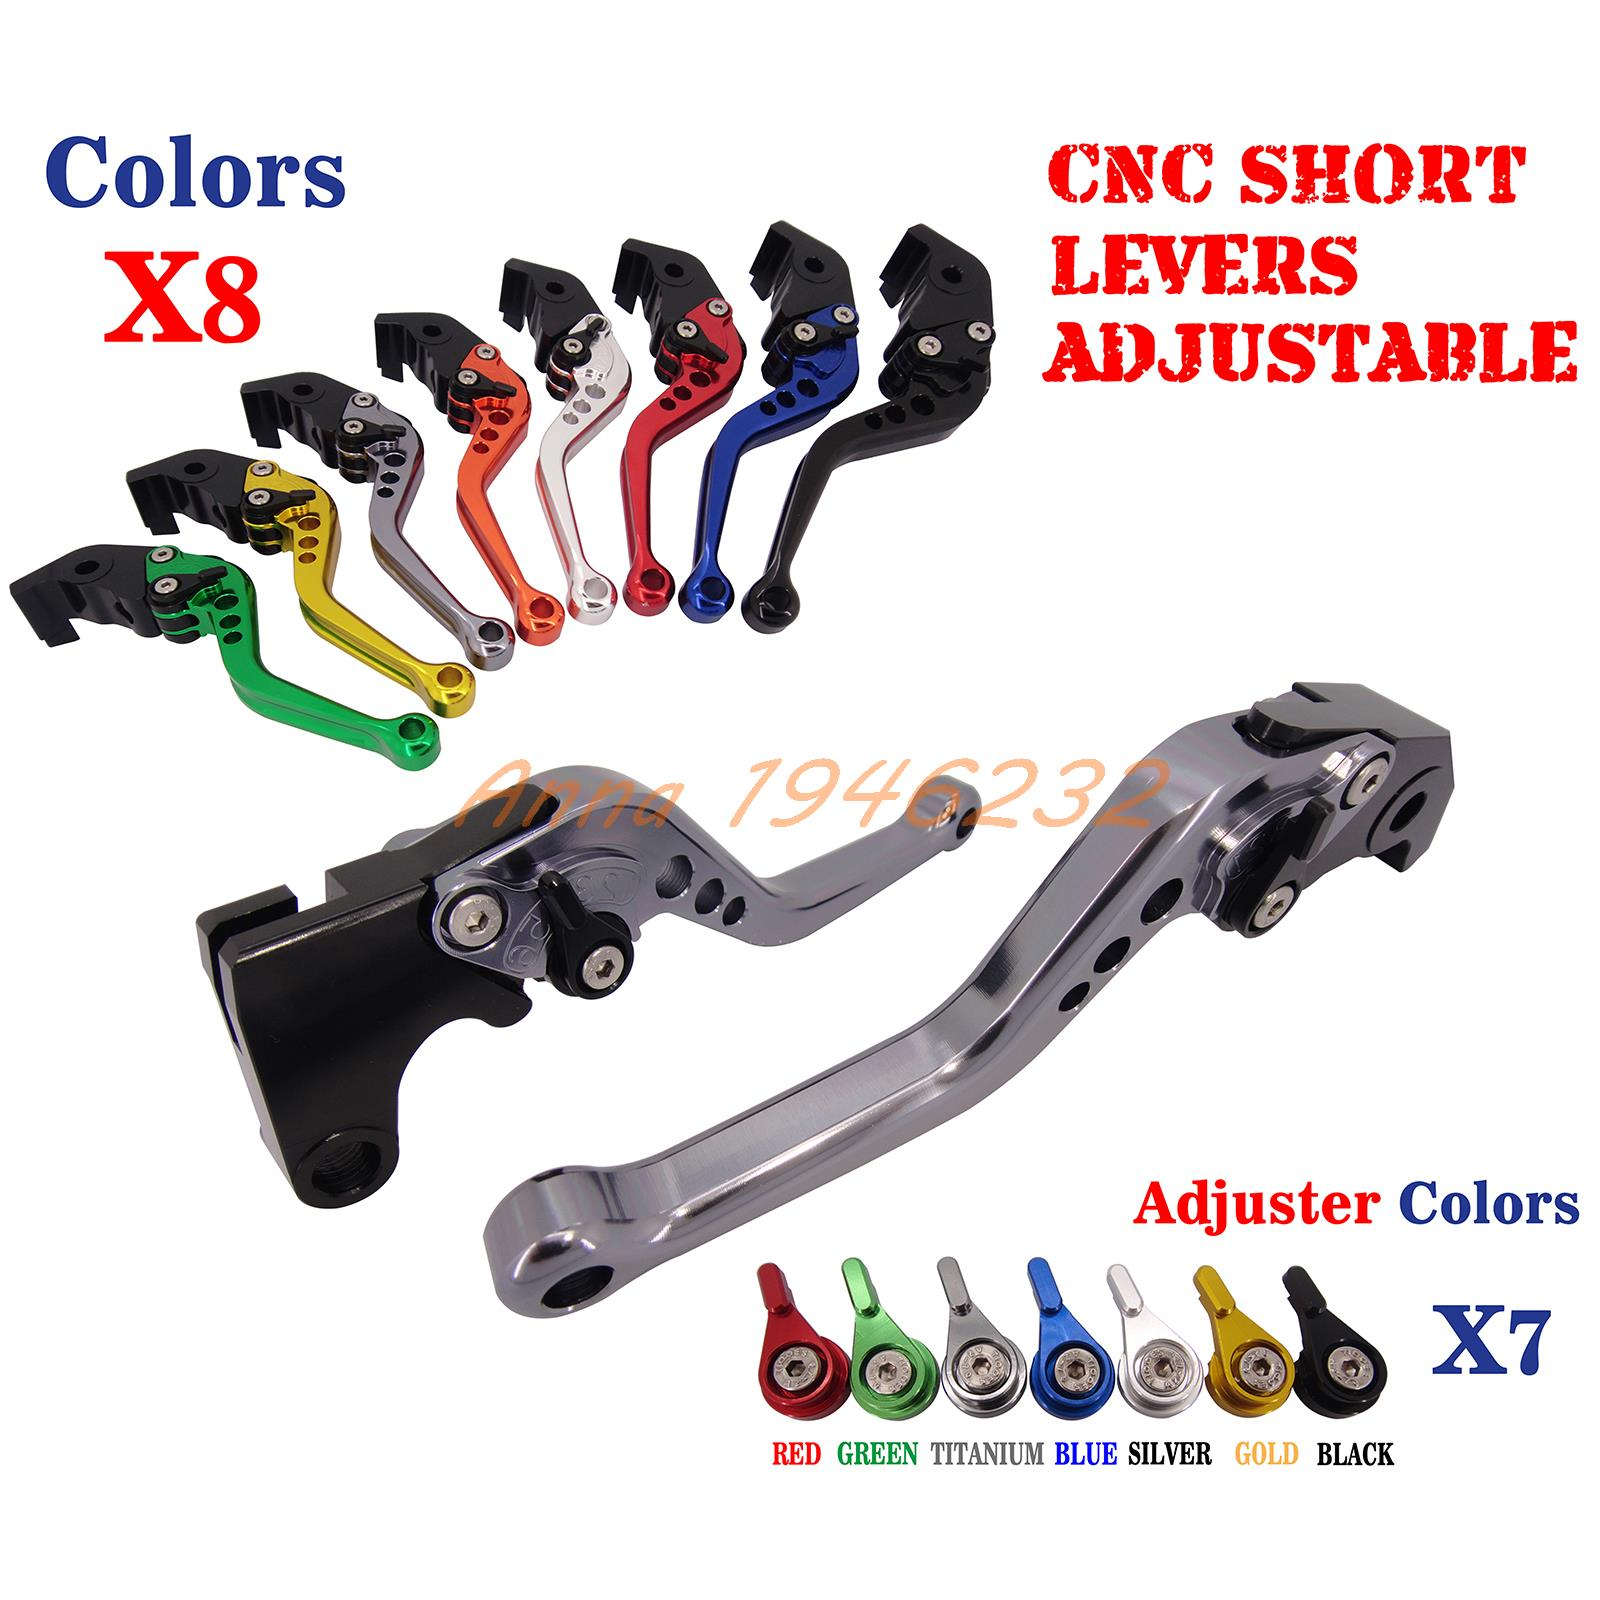 CNC Short Adjustable Brake Clutch Lever For Yamaha XJR400 1993-2007 FZ400 1997 FZS600 Fazer 1998-2003 FZS 600 NEW for yamaha fzs 600 fazer 2002 2003 cnc motorcycle foldable extending 170mm brake clutch levers moto folding extendable lever